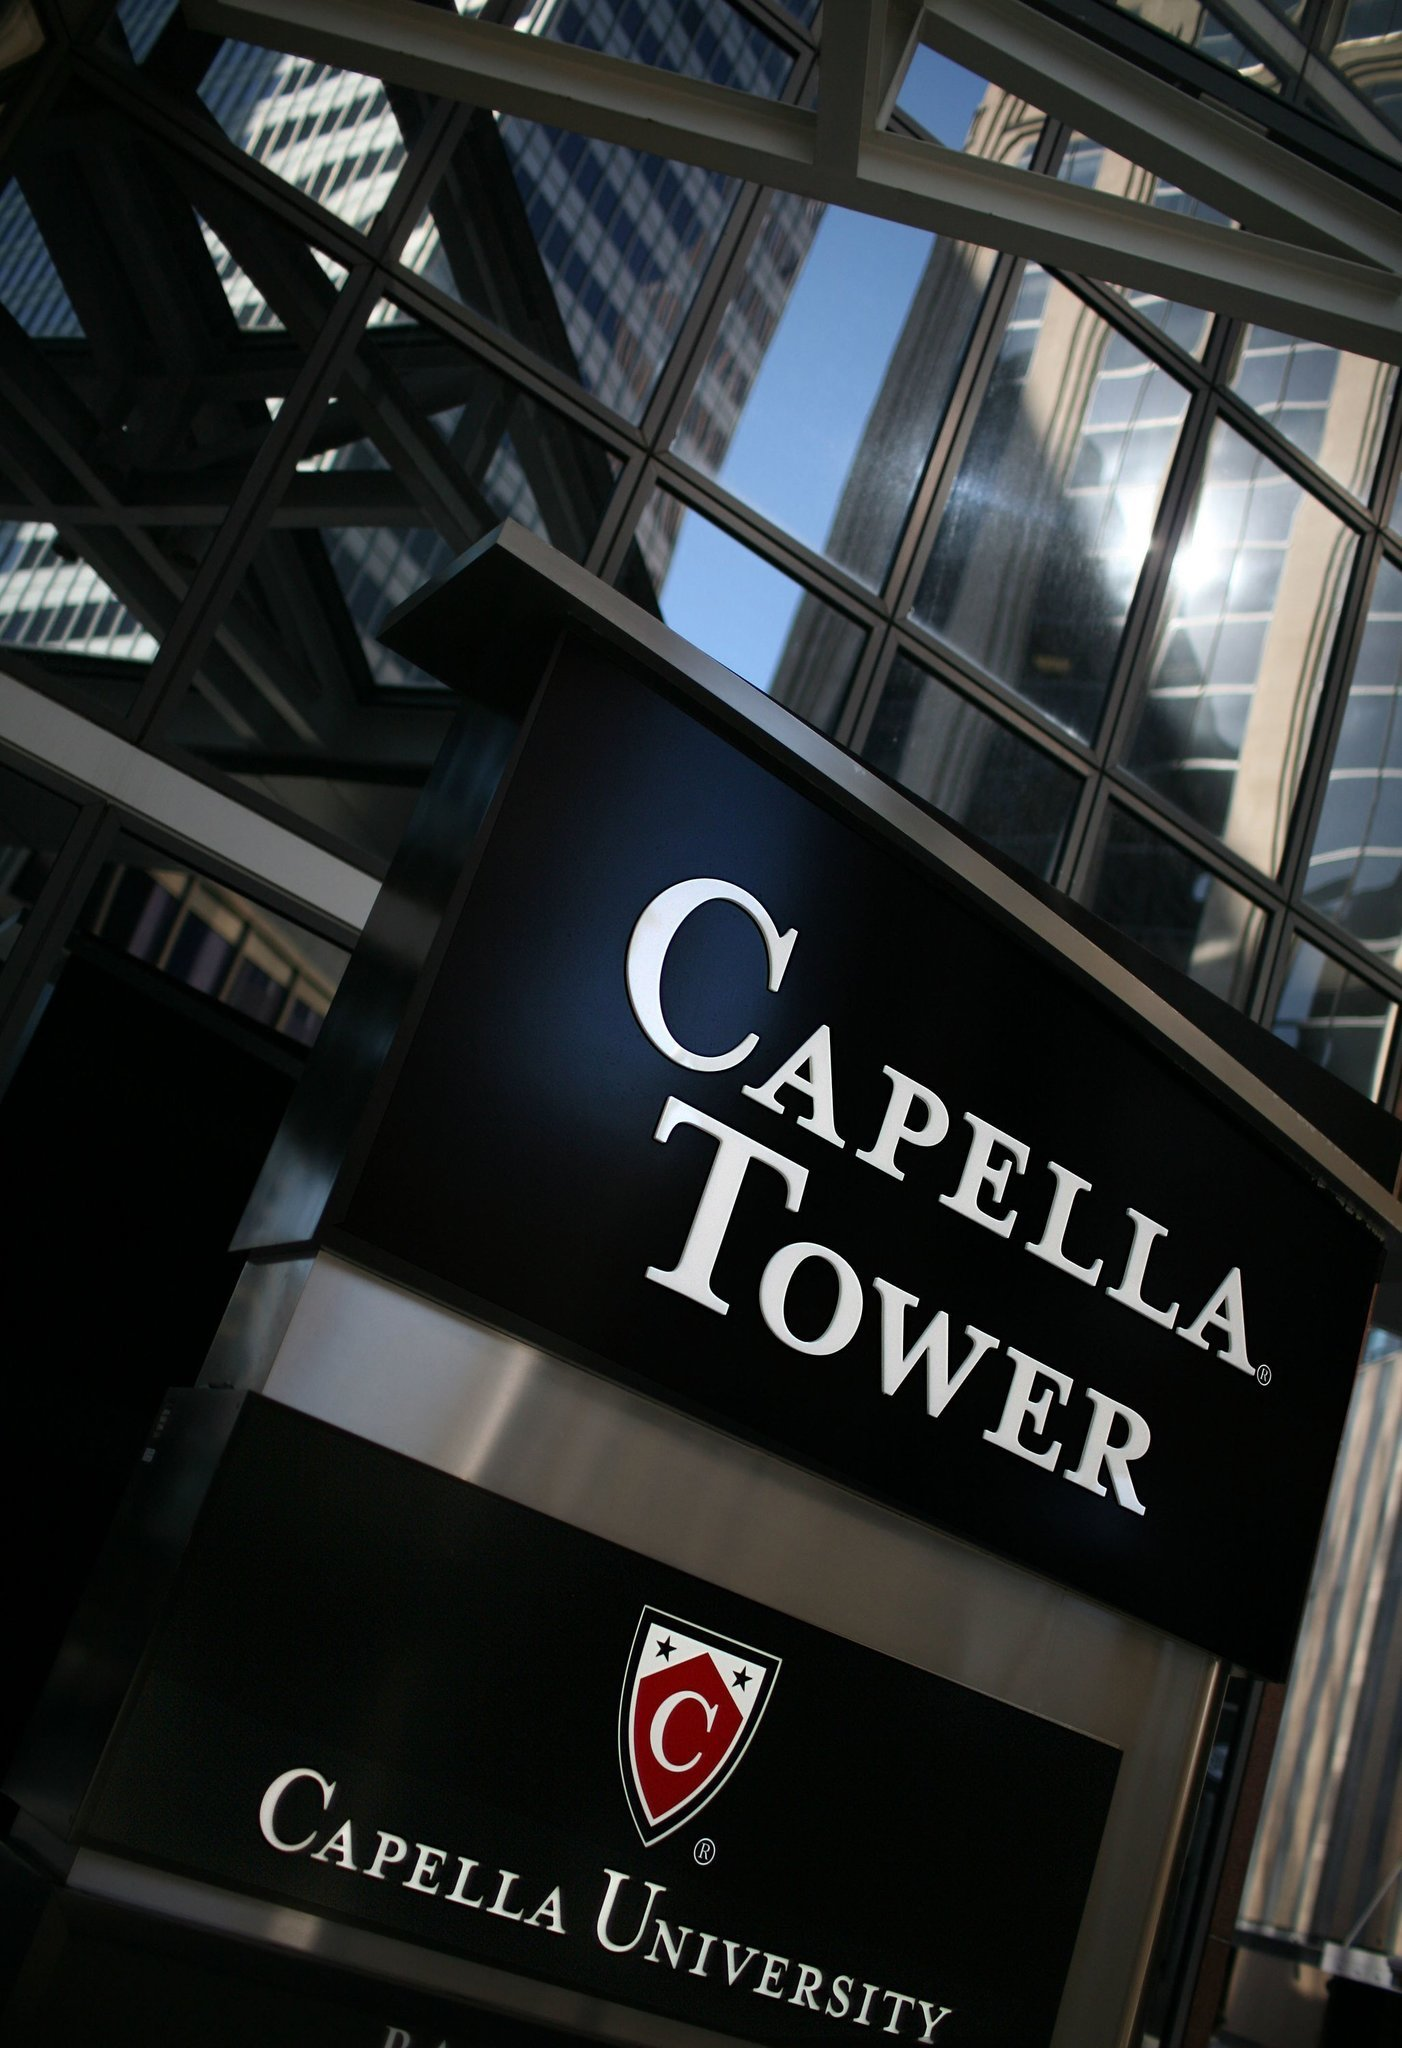 Capella University Building